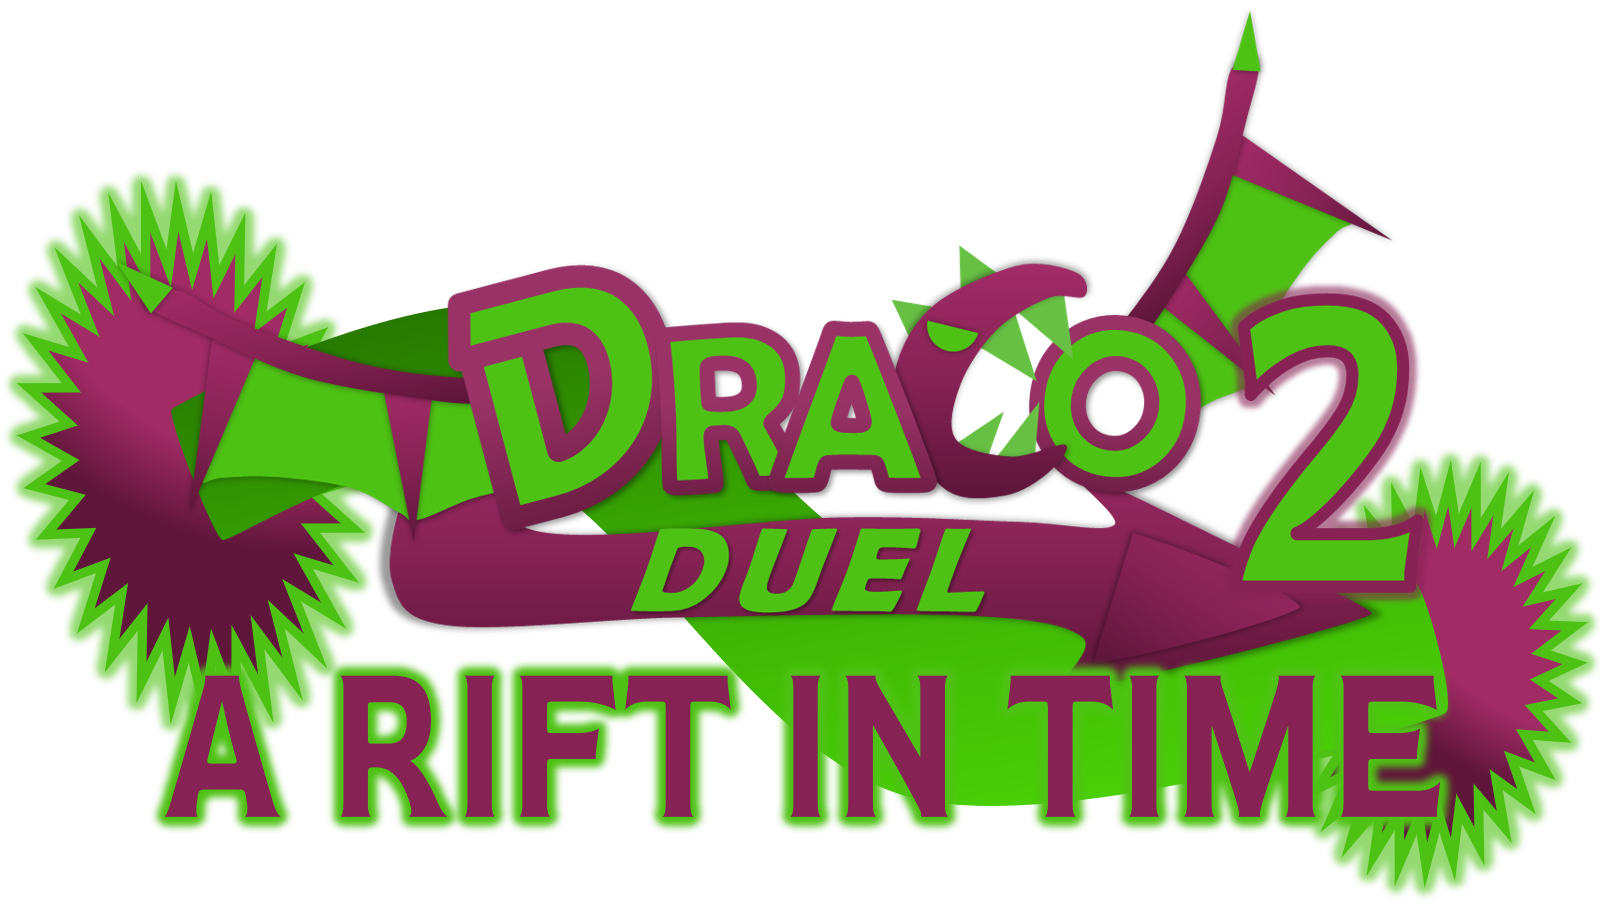 Draco Duel 2/A Rift in Time